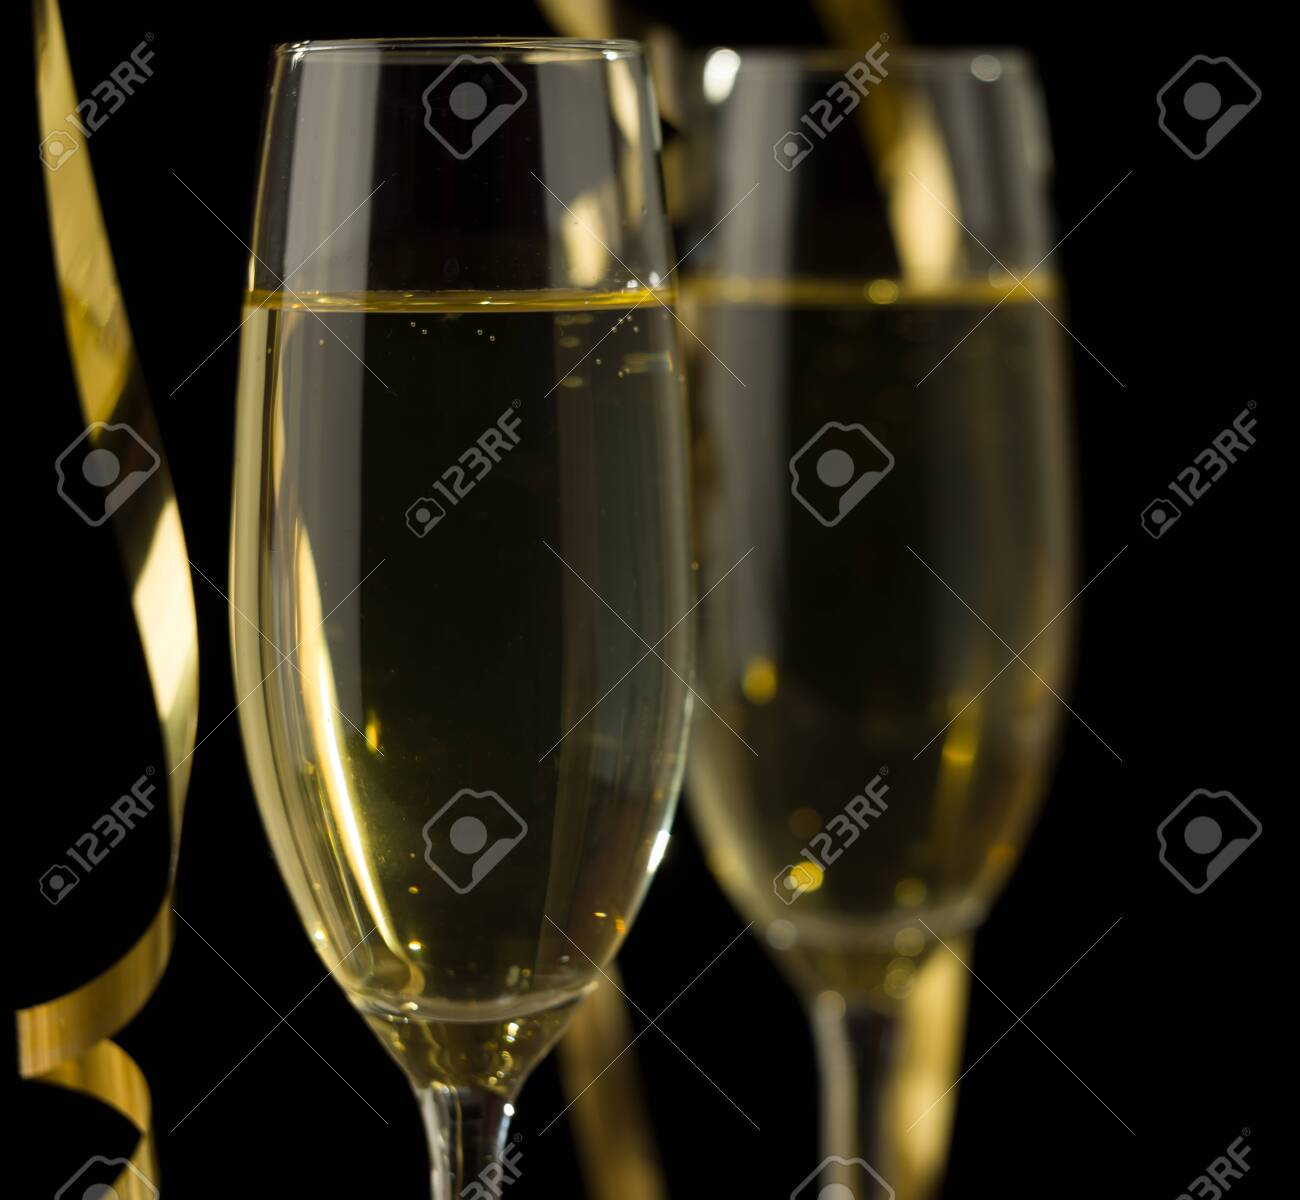 Two glasses of champagne in front of dark background - 137576570